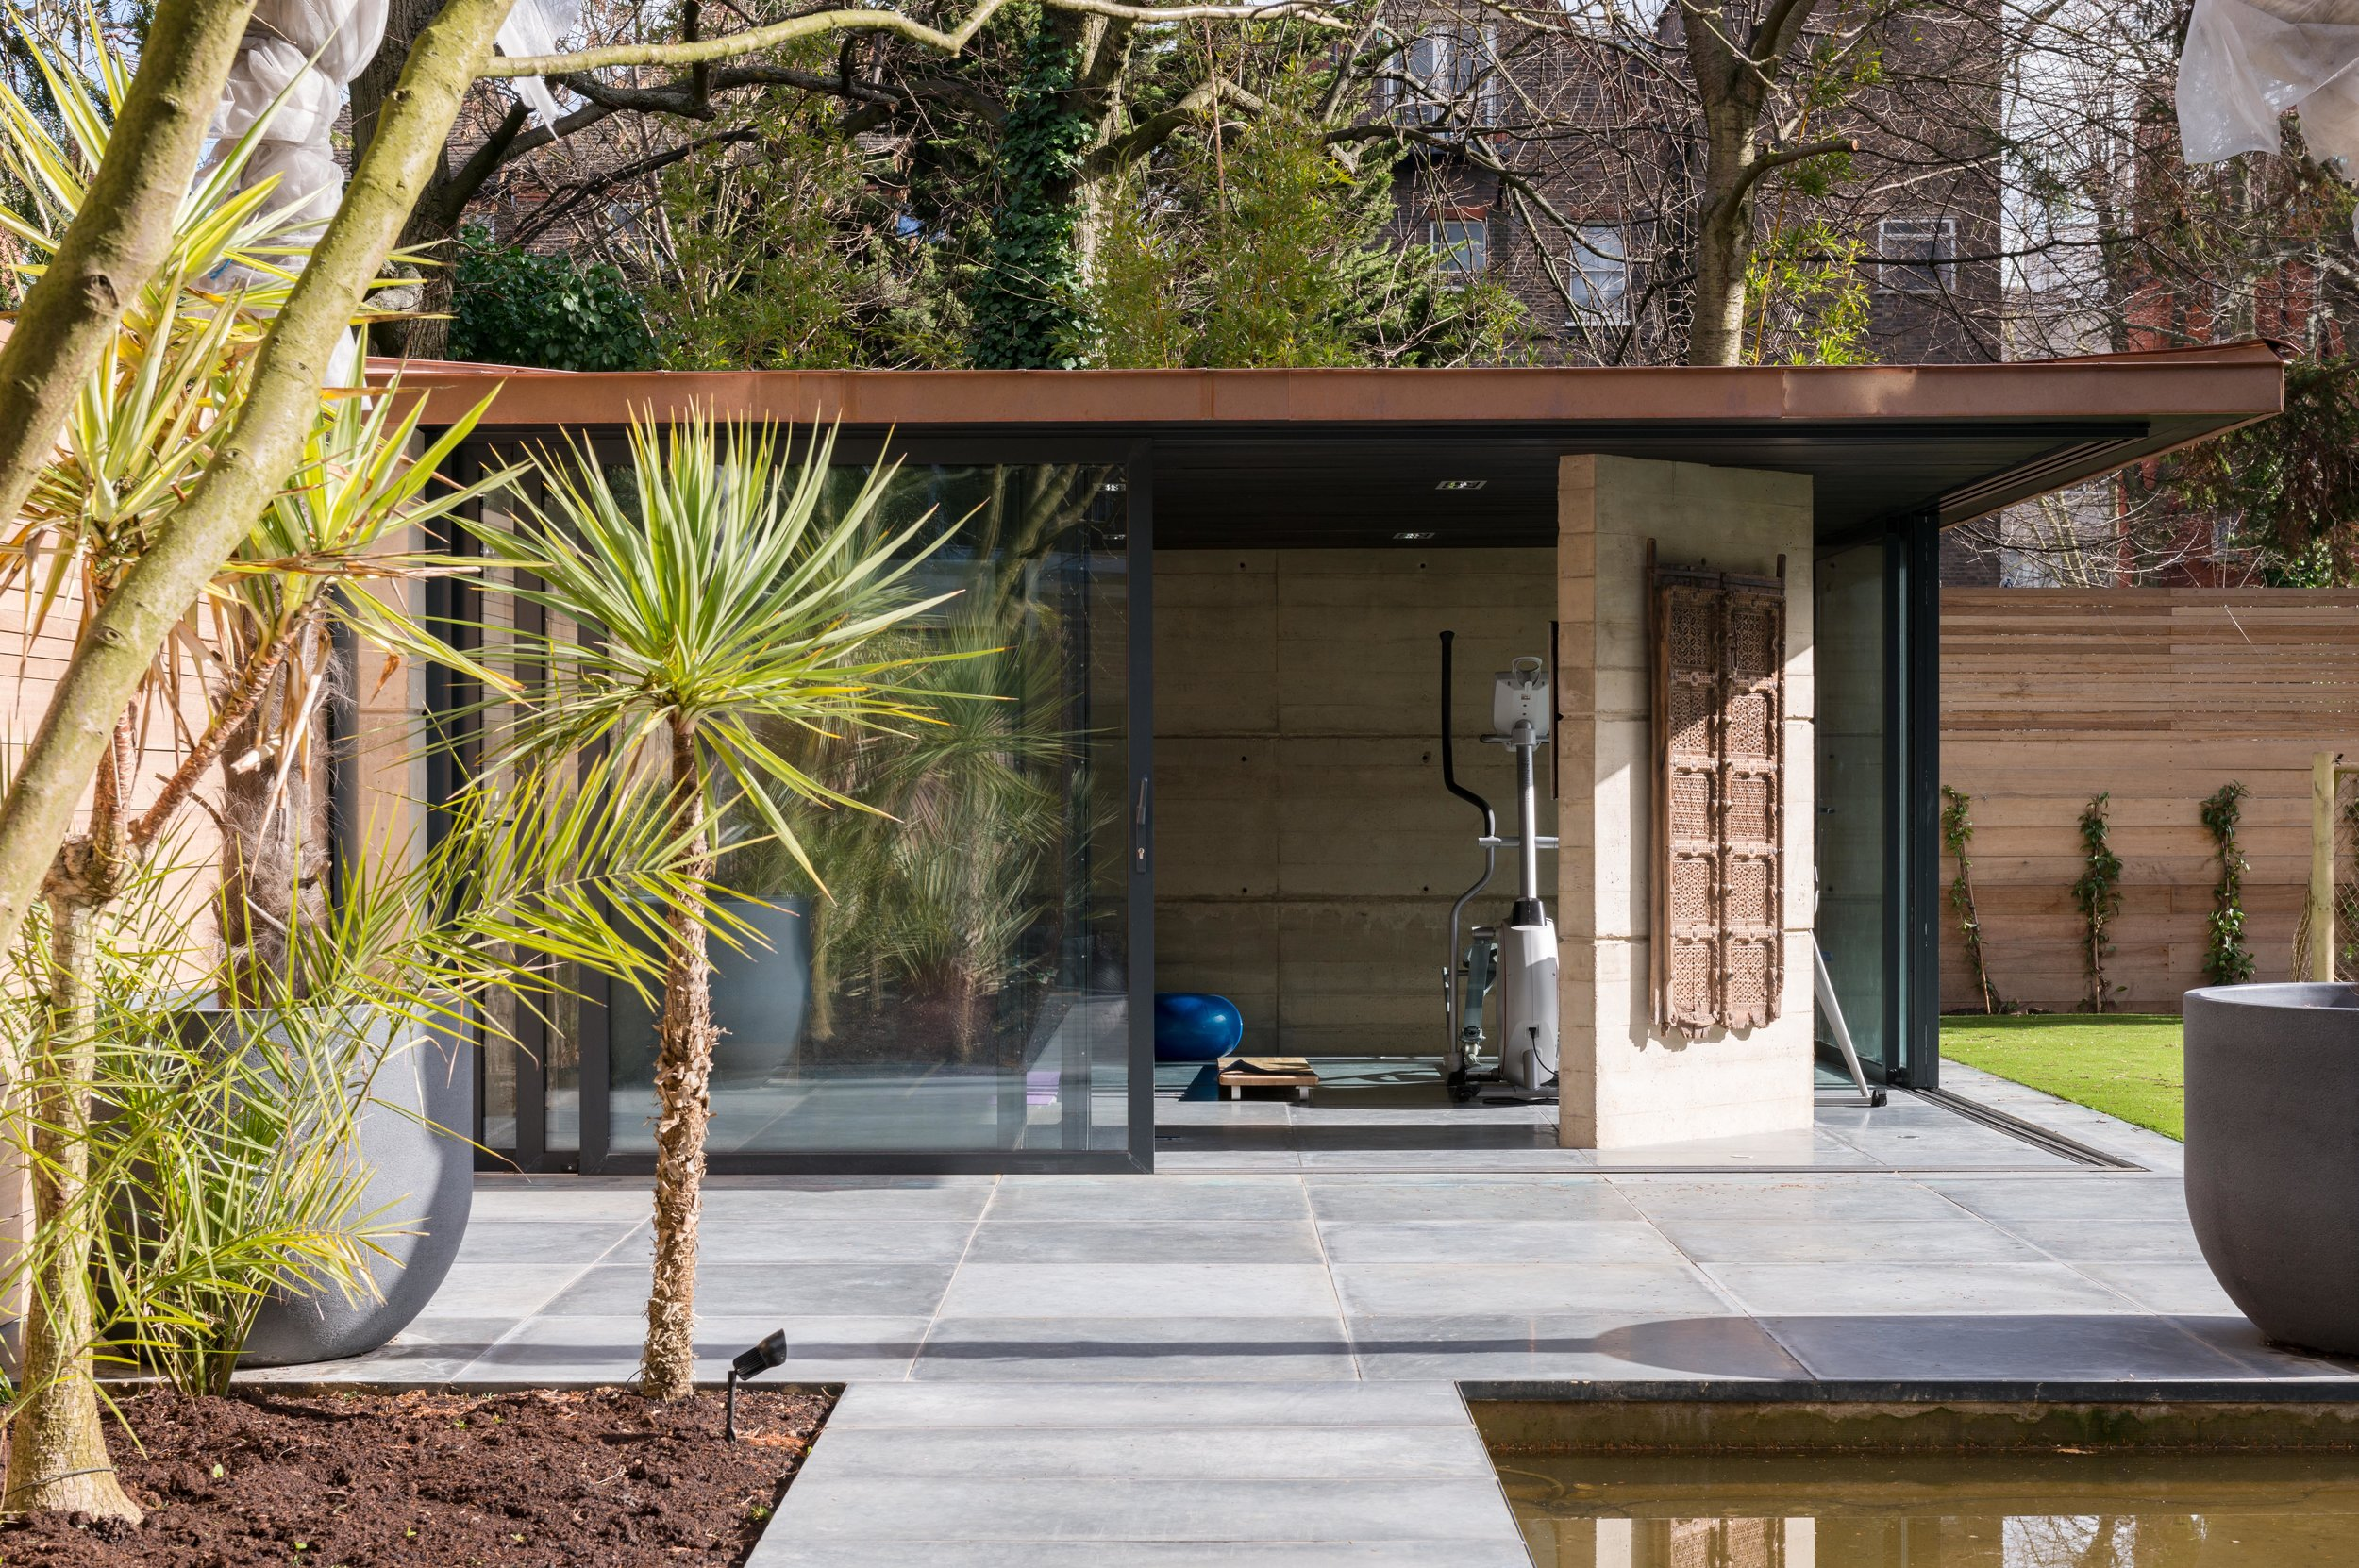 Yoga Pavilion   Hand-finished concrete and copper rear garden outbuilding beneath a tree canopy.